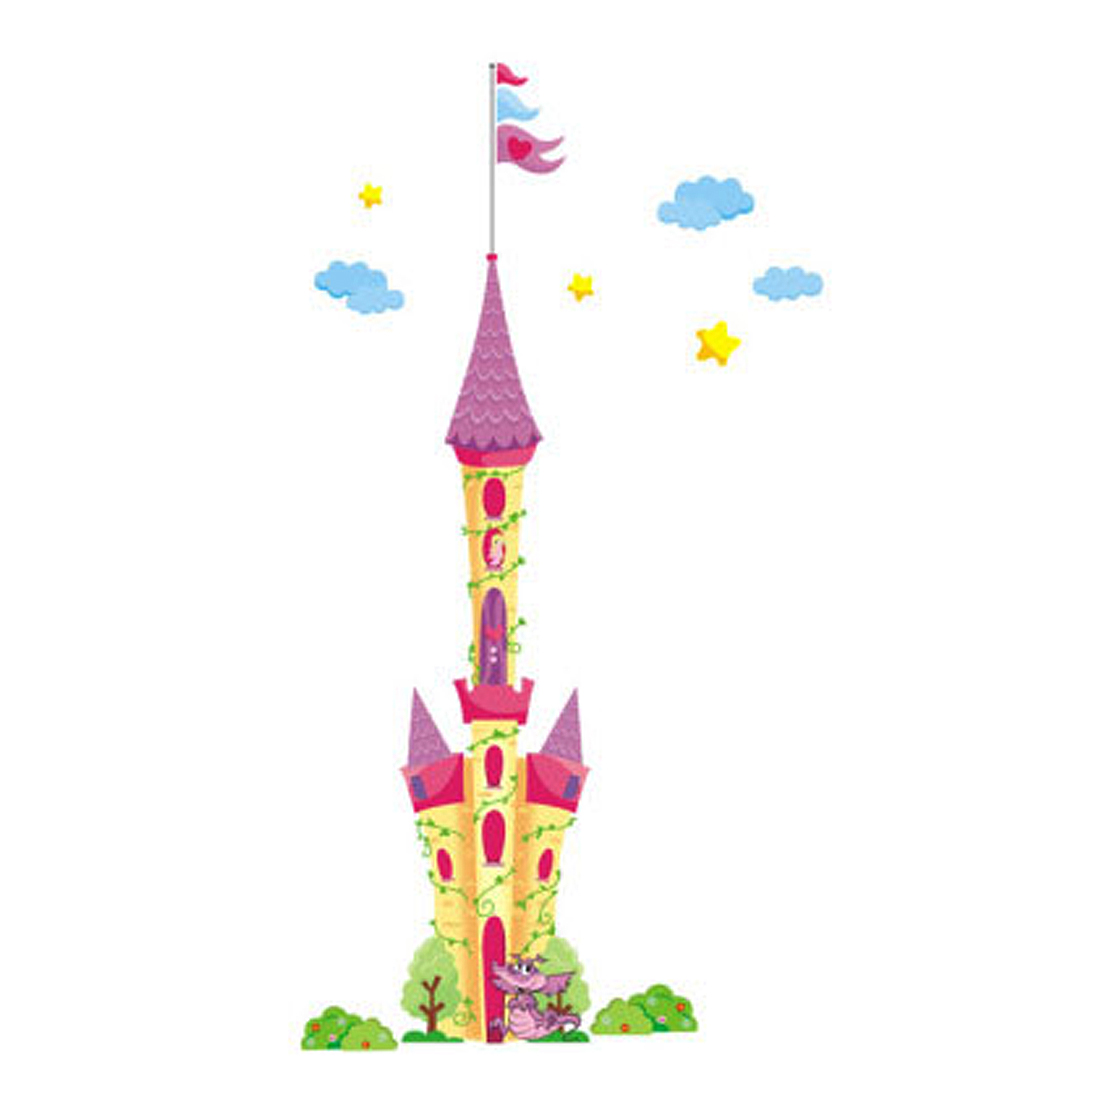 Nursery School Castle Pattern Removable Wall Sticker Wallpaper Mural Multicolor